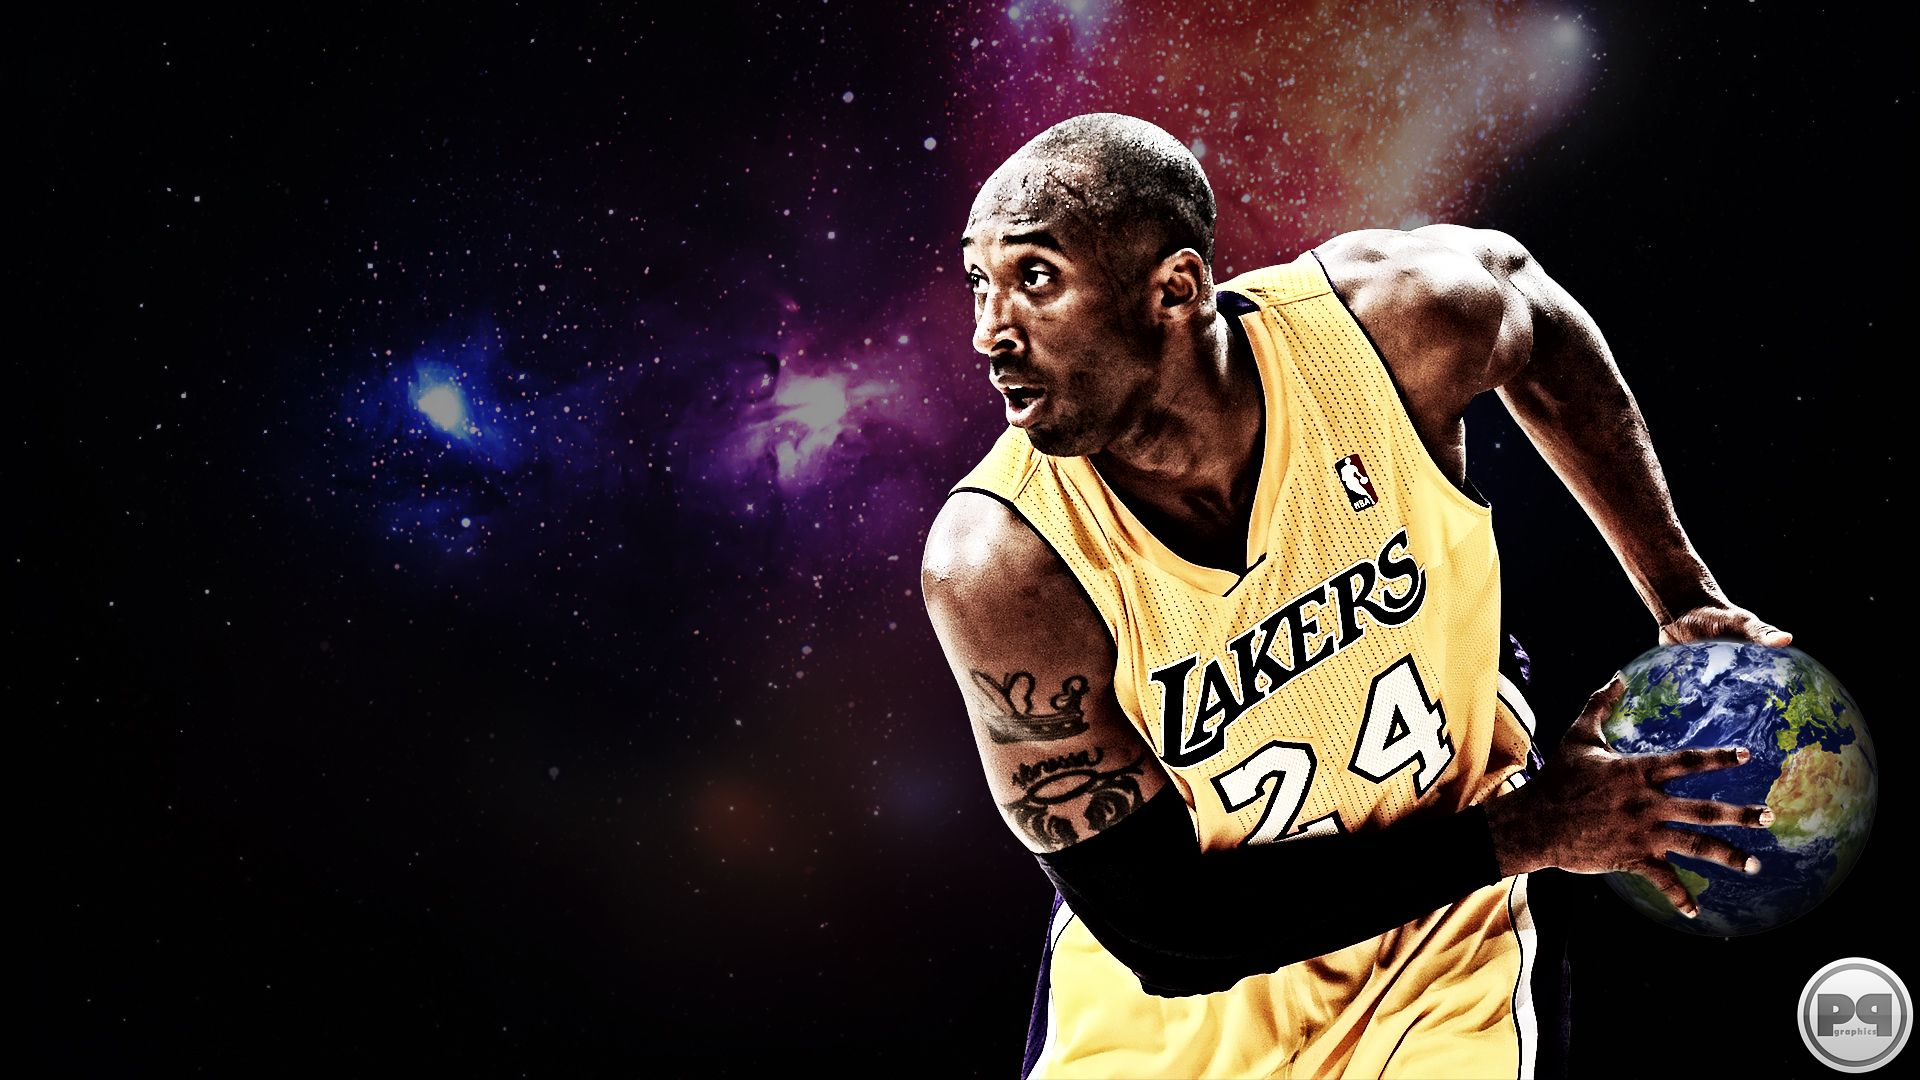 New NBA 2013 Kobe Bryant Los Angeles Lakers Basketball Wallpaper By Streetball Fam Member Pavan P Graphics 1920x1080